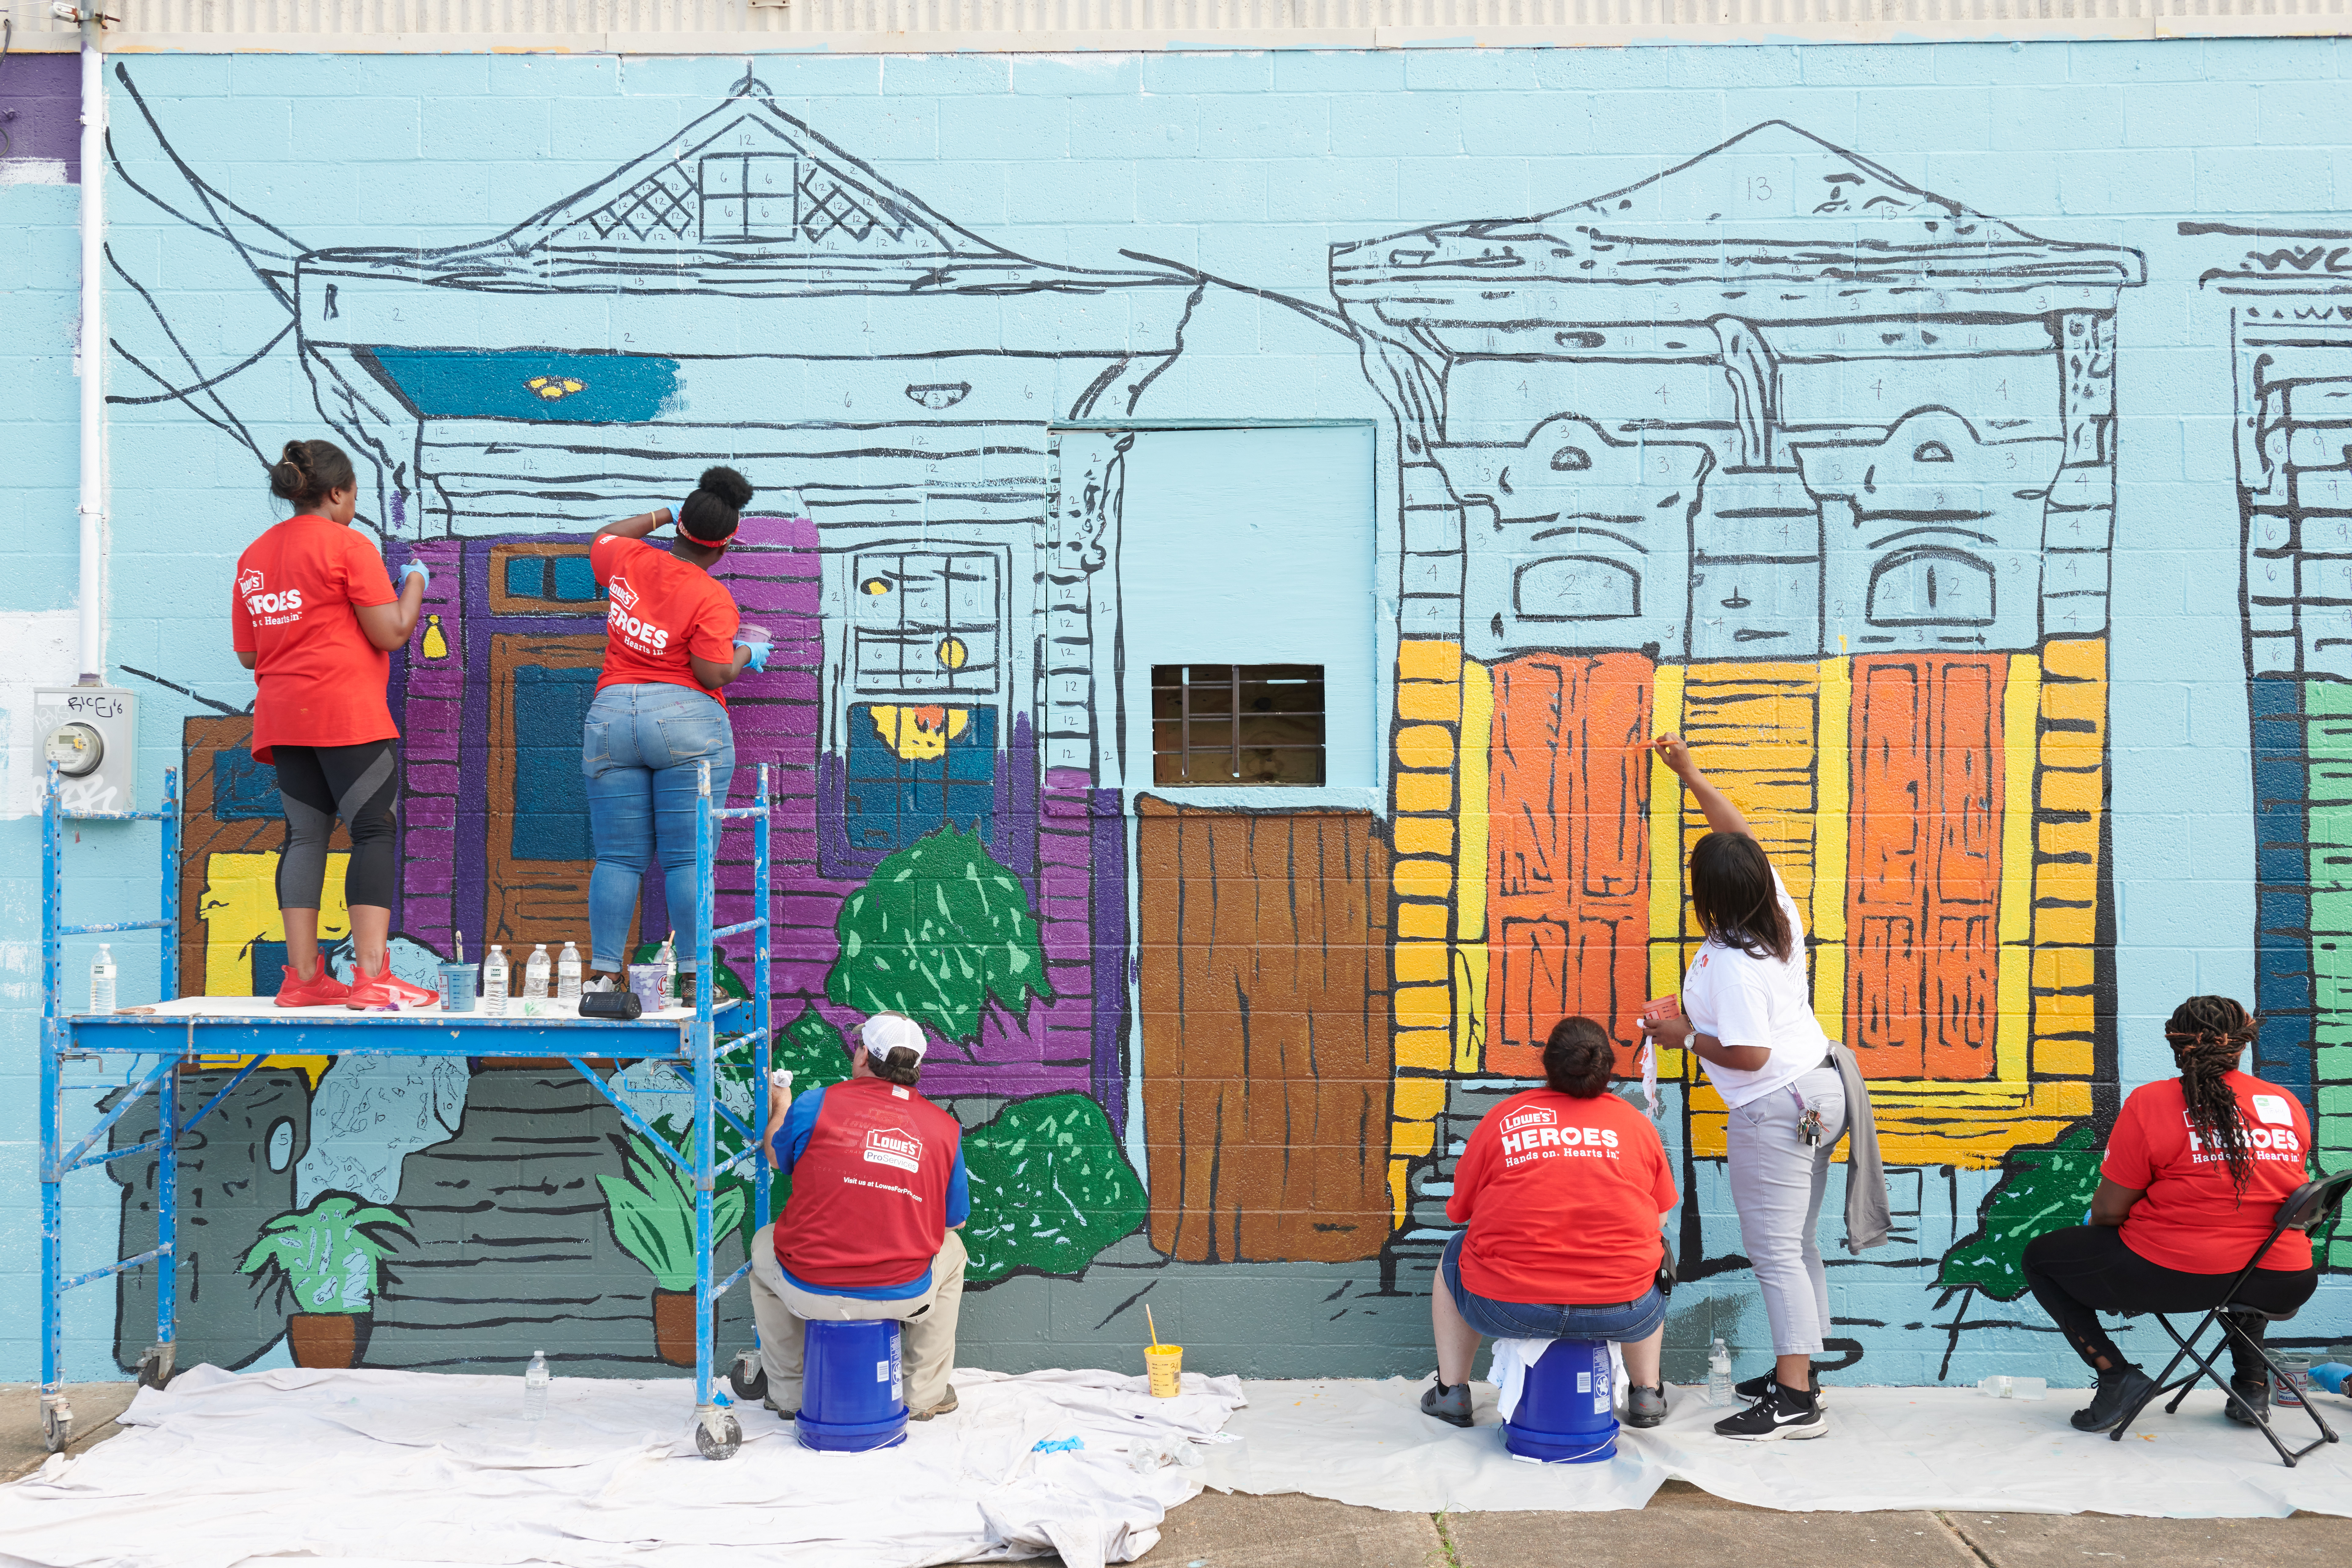 St Roch has a new tool lending library and murals courtesy of nonprofit Rebuilding To her